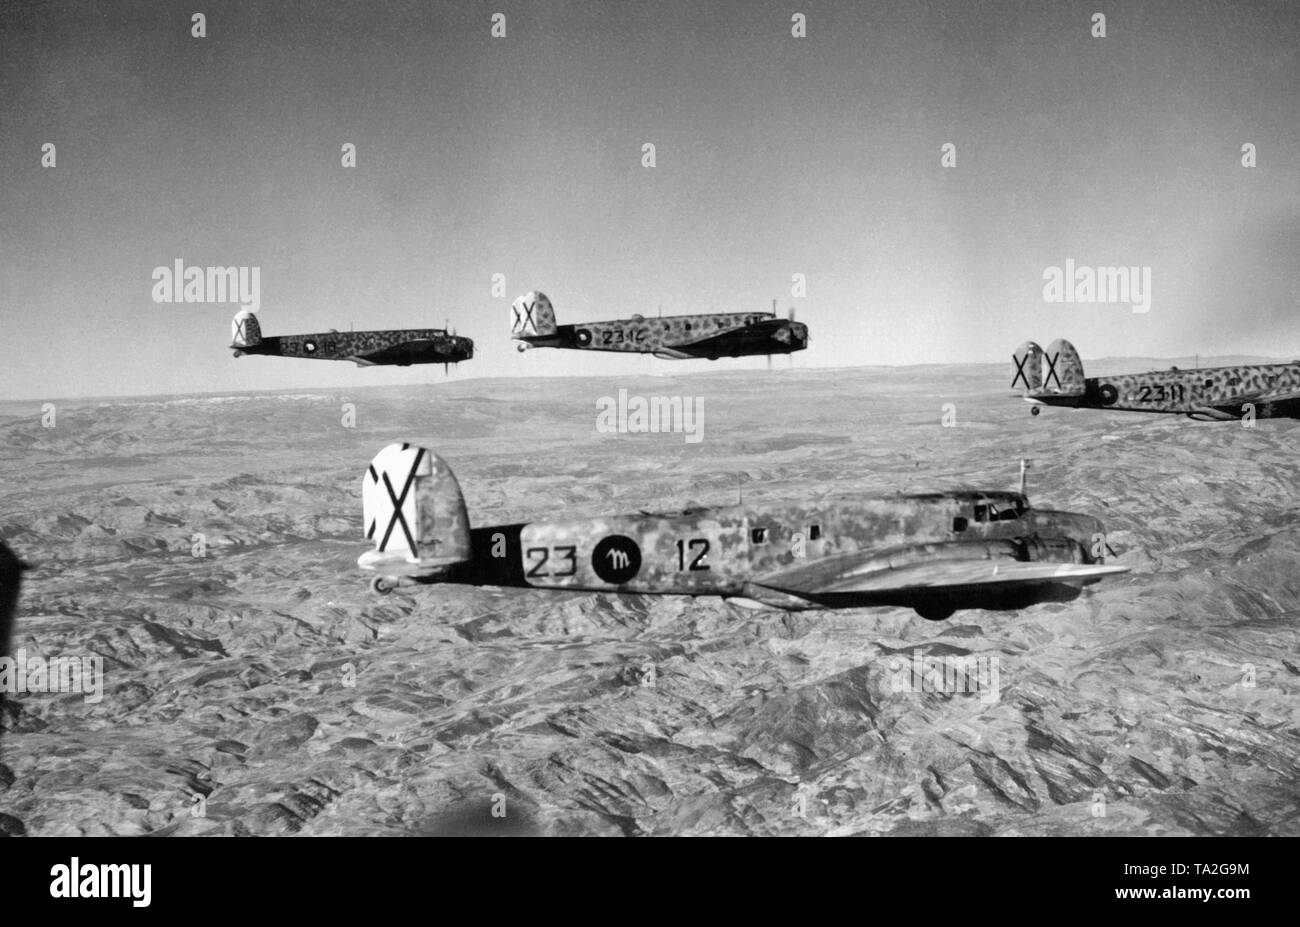 Photo of four Italian bombers, type Fiat BR.20 'Cicogna' on a Feindflug over a mountain chain in the Spanish Civil War. The cockades of the Italian Aviazione Legionaria, which resembled those of the German Condor Legion, are easily recognizable. There is a white letter M in the black cockade on the hull, which stands for the M in the signature of Benito Mussolini. - Stock Image